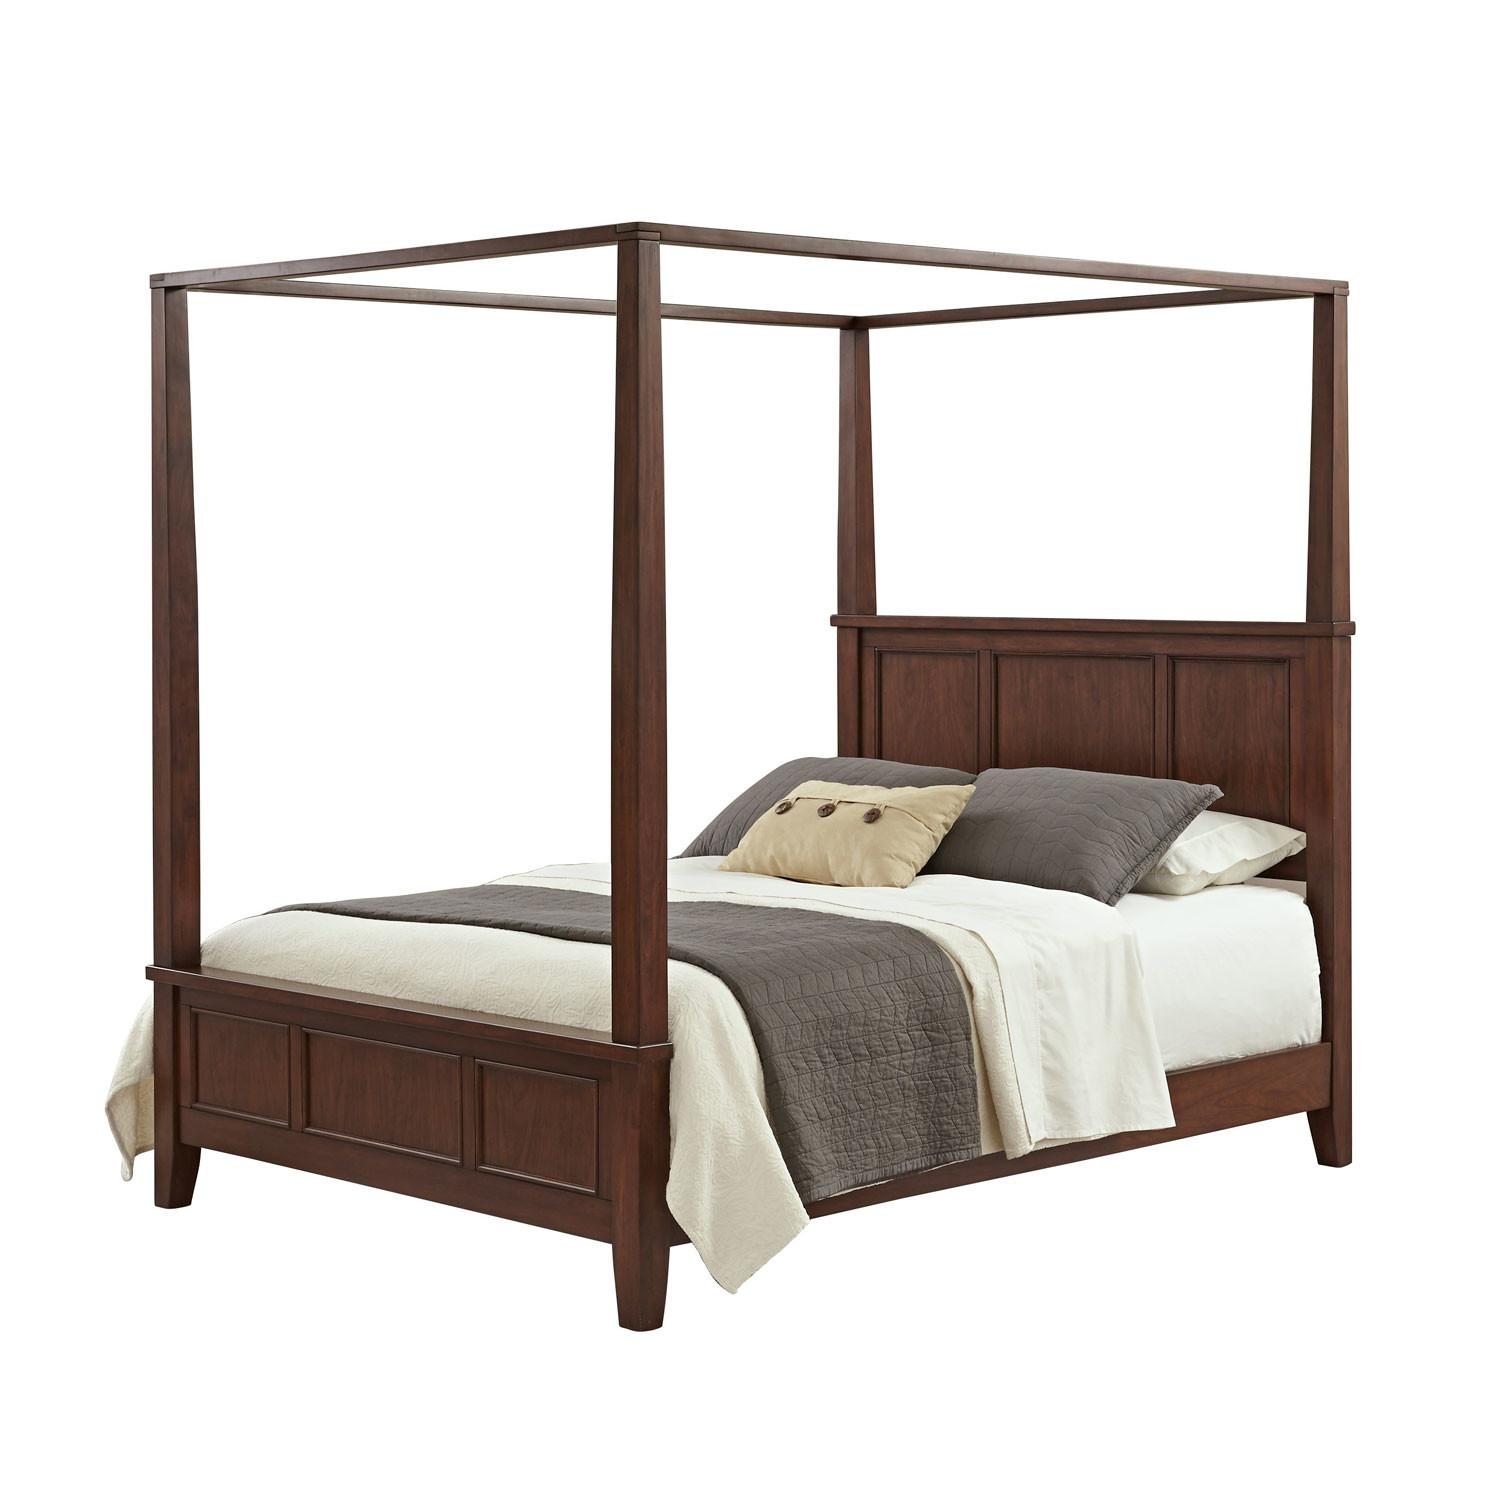 Chesapeake Cherry King Canopy Bed Home Styles Furniture